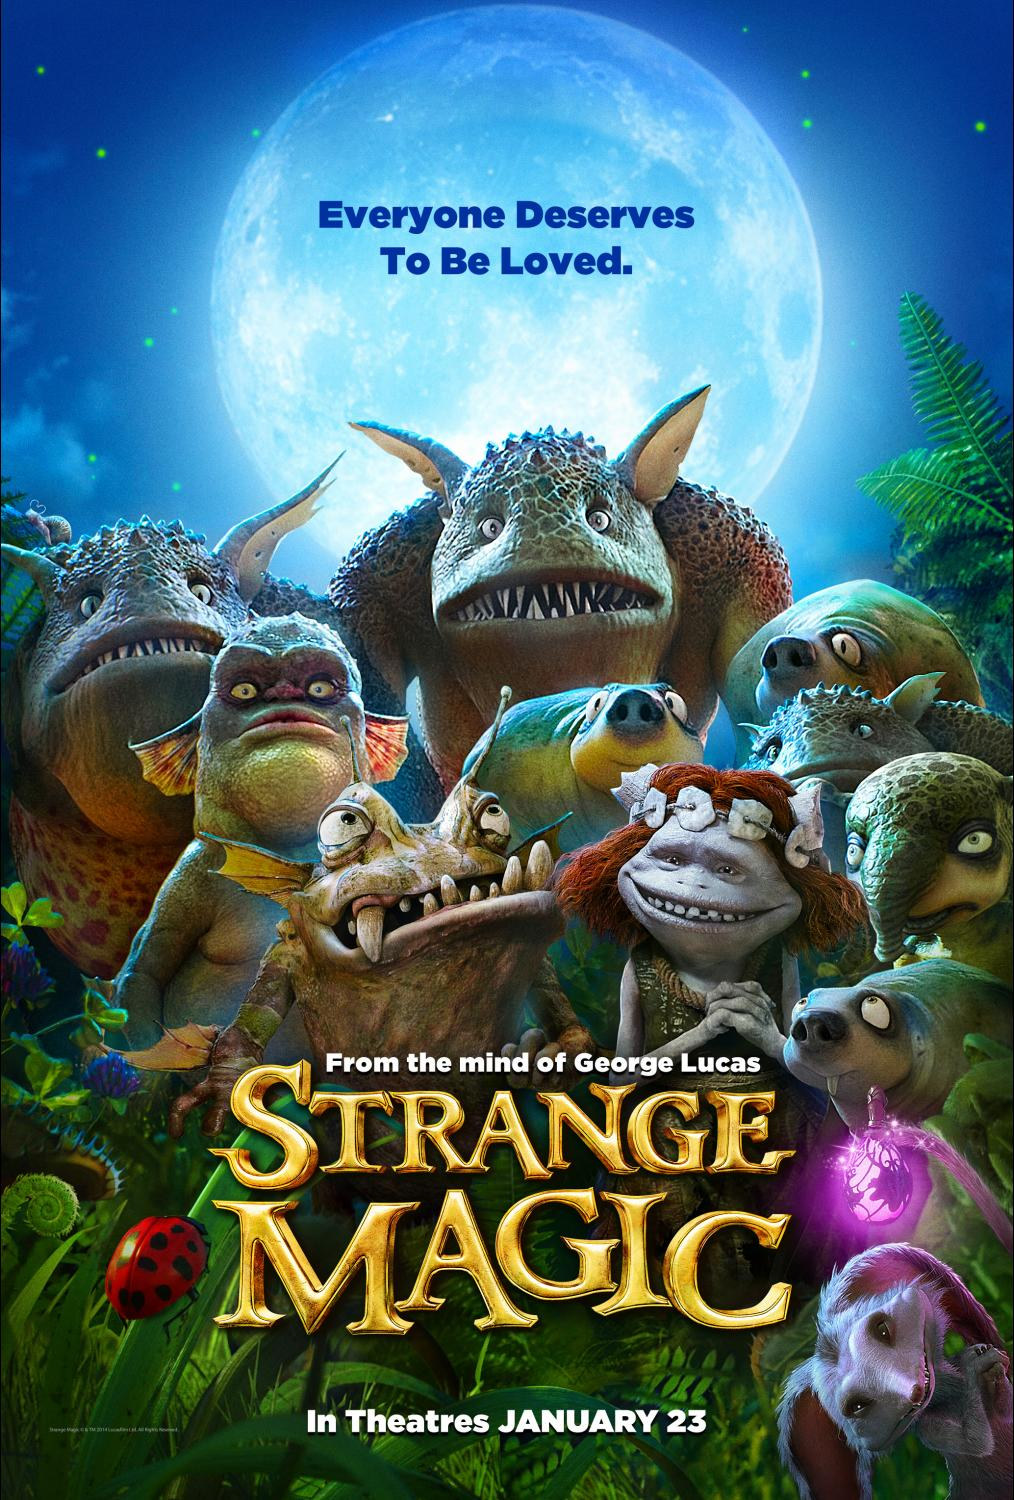 Strange Magic Disappoints at the Box Office